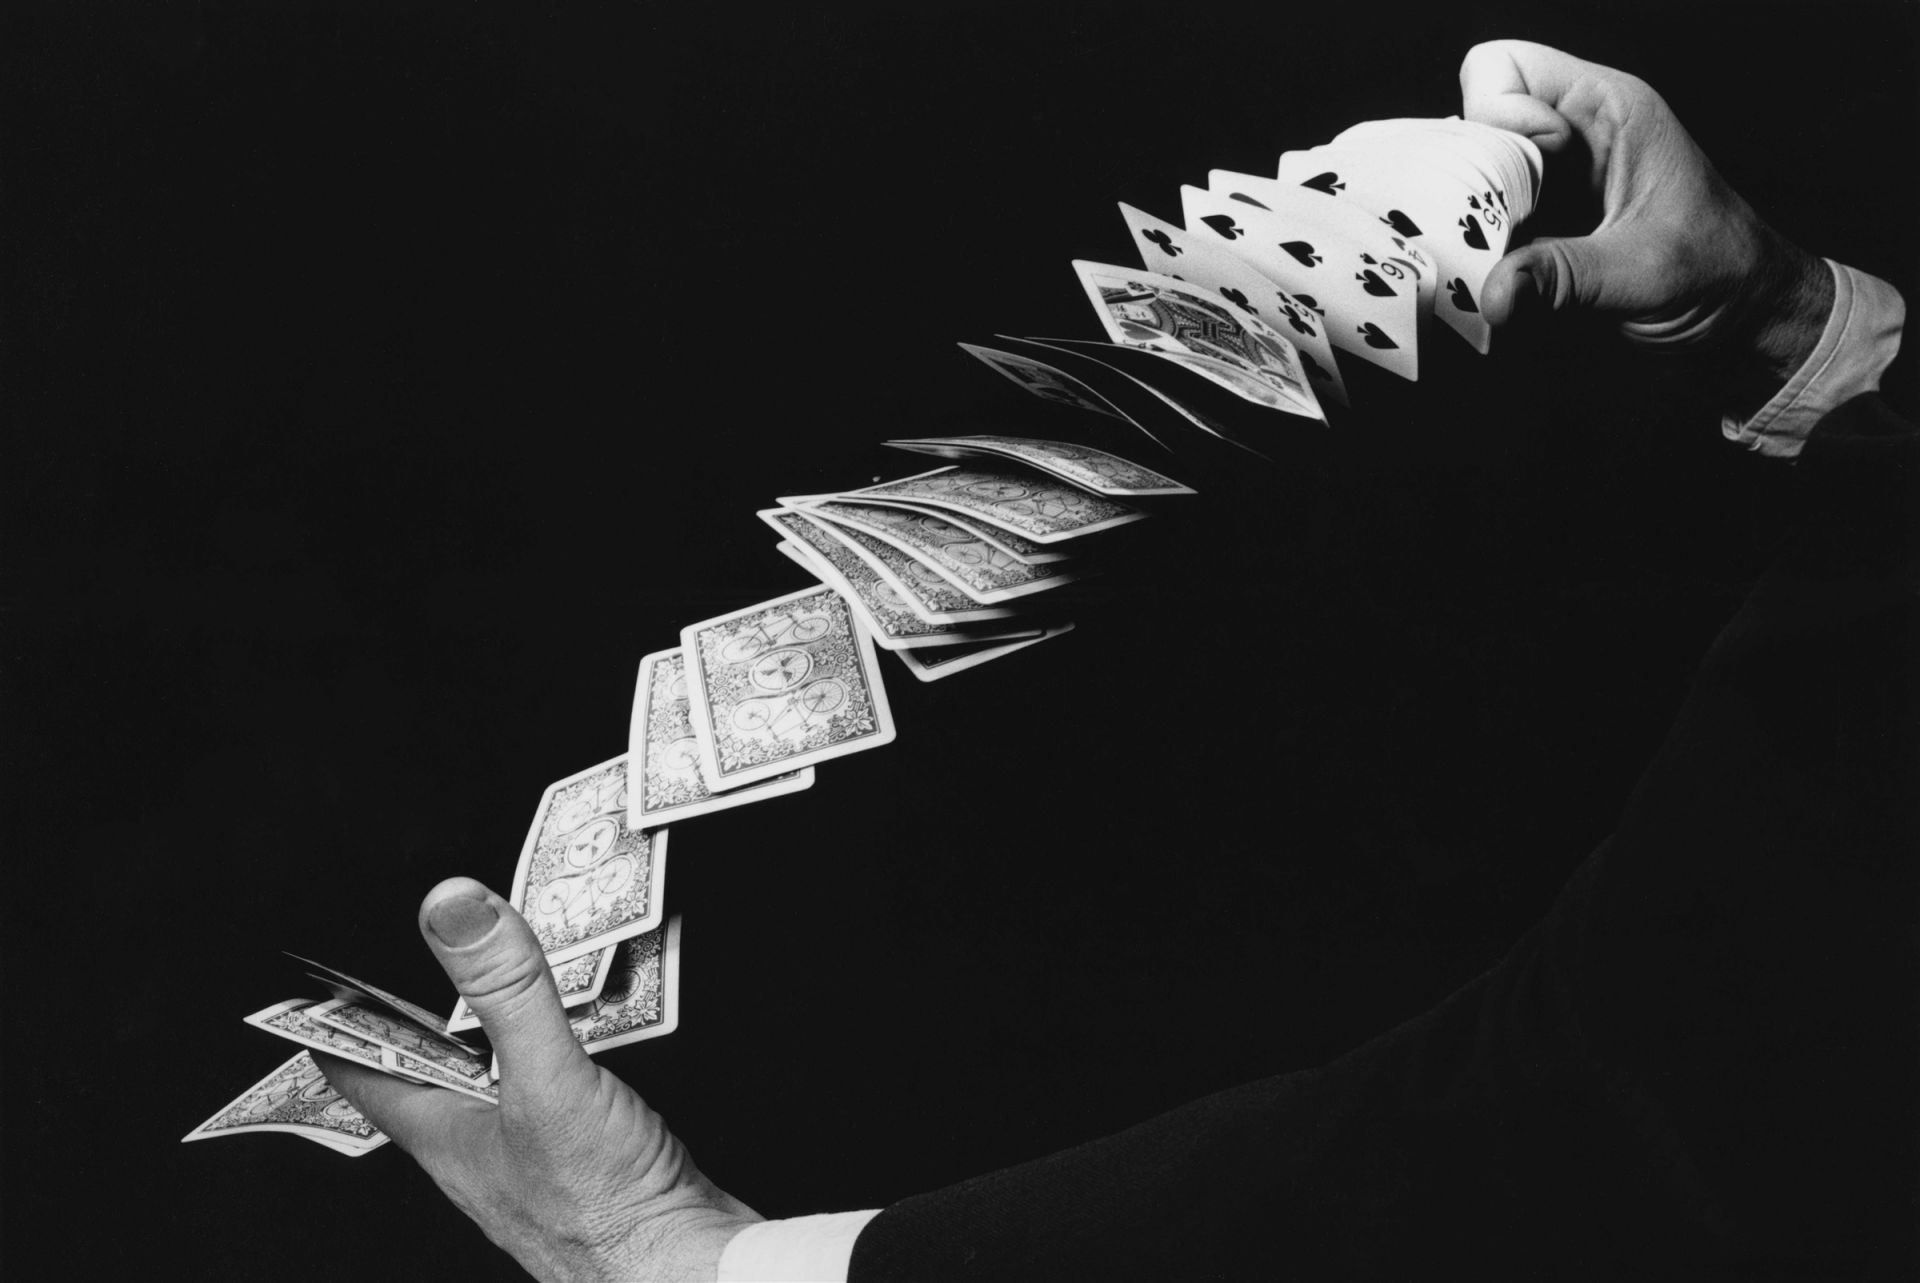 <i>Fanning the Cards,</i> 1940<br> gelatin silver print<br> 11 x 14 inches<br> Faster than the eye, but not the flash. An expert flips the cards from hand to hand, controlling their flight with thumb and forefinger. This photograph was taken during Edgerton's Oscar-winning work at MGM Studios on the film